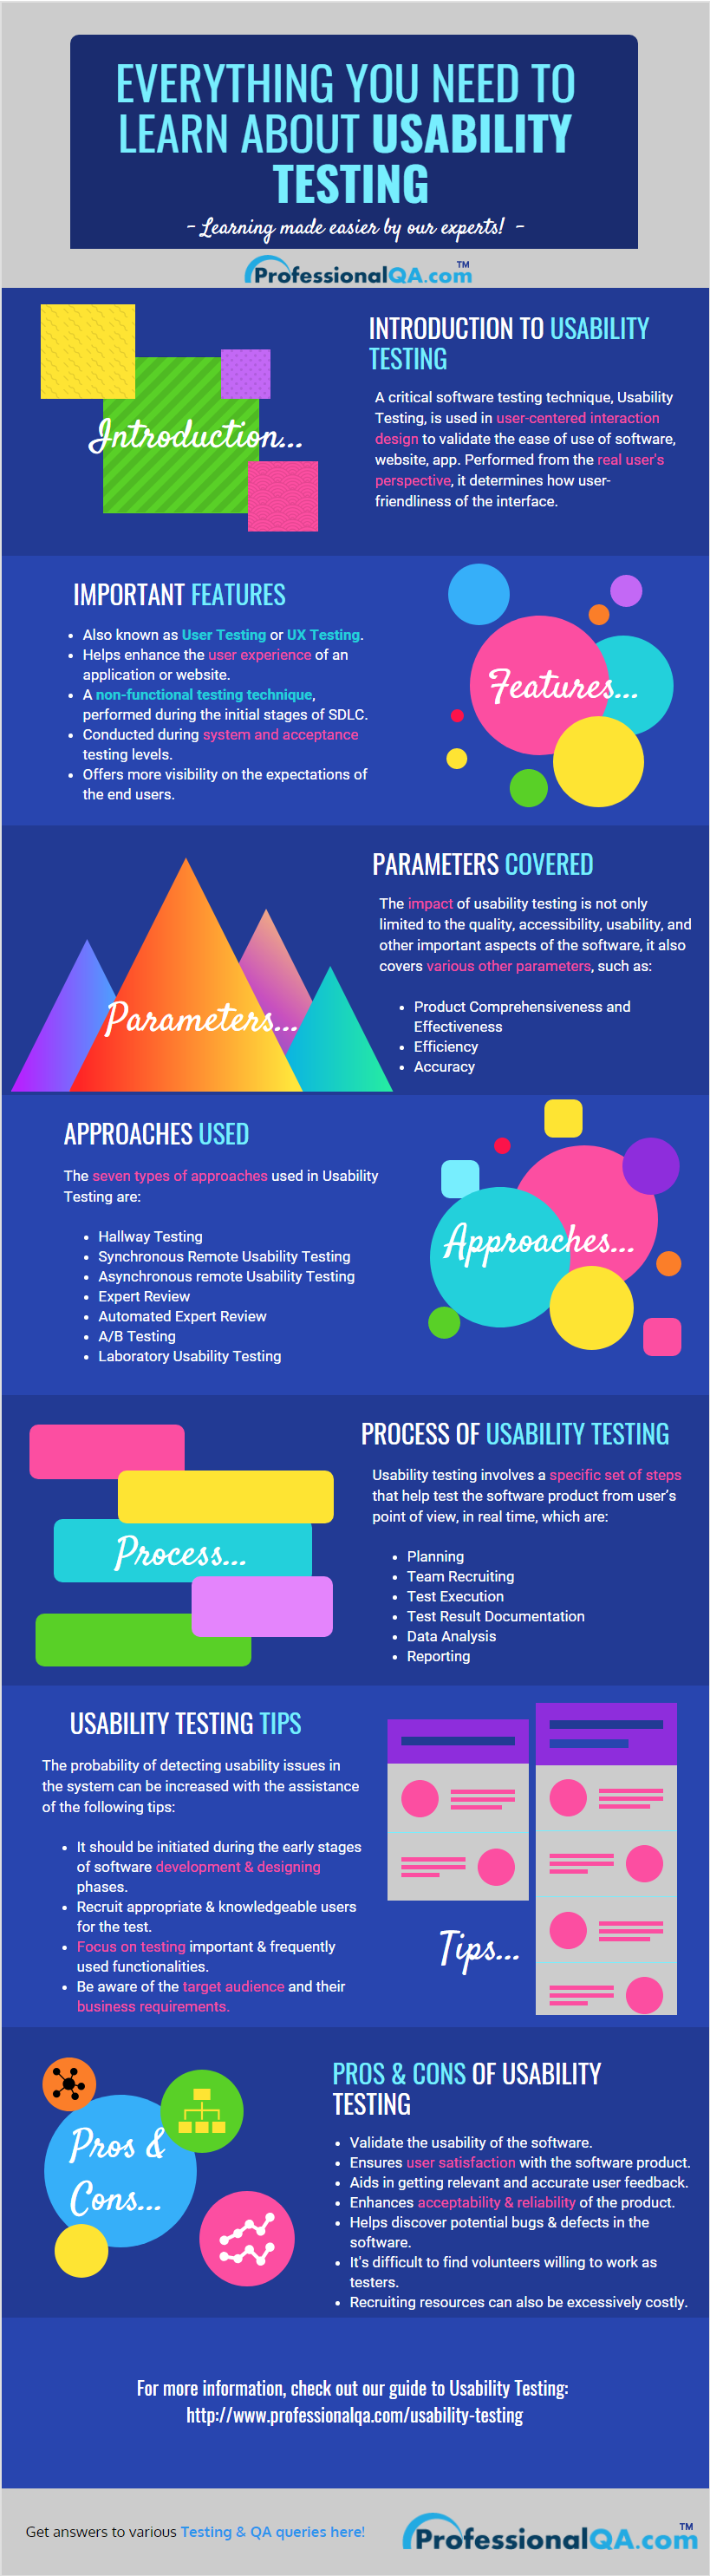 Usability Testing: Your Way to Ensuring Optimum User Experience! #userexperience